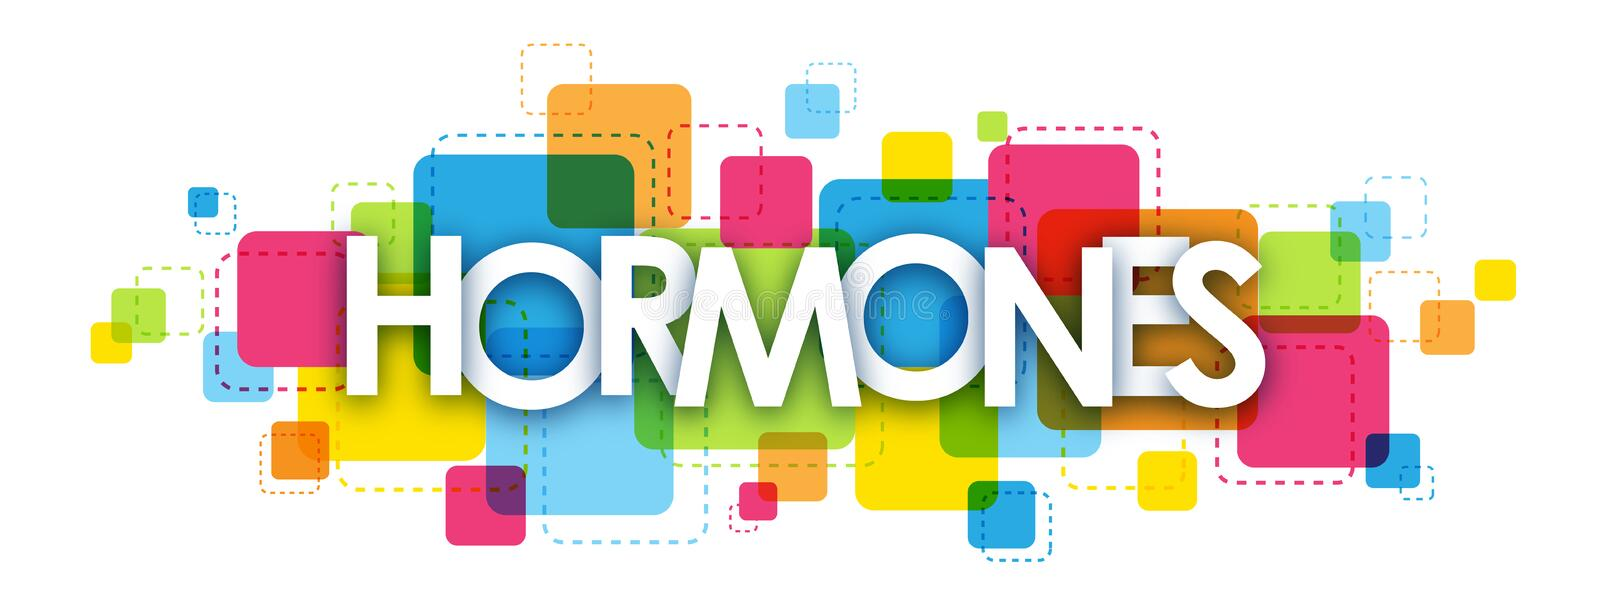 HORMONES banner on colorful squares background royalty free illustration